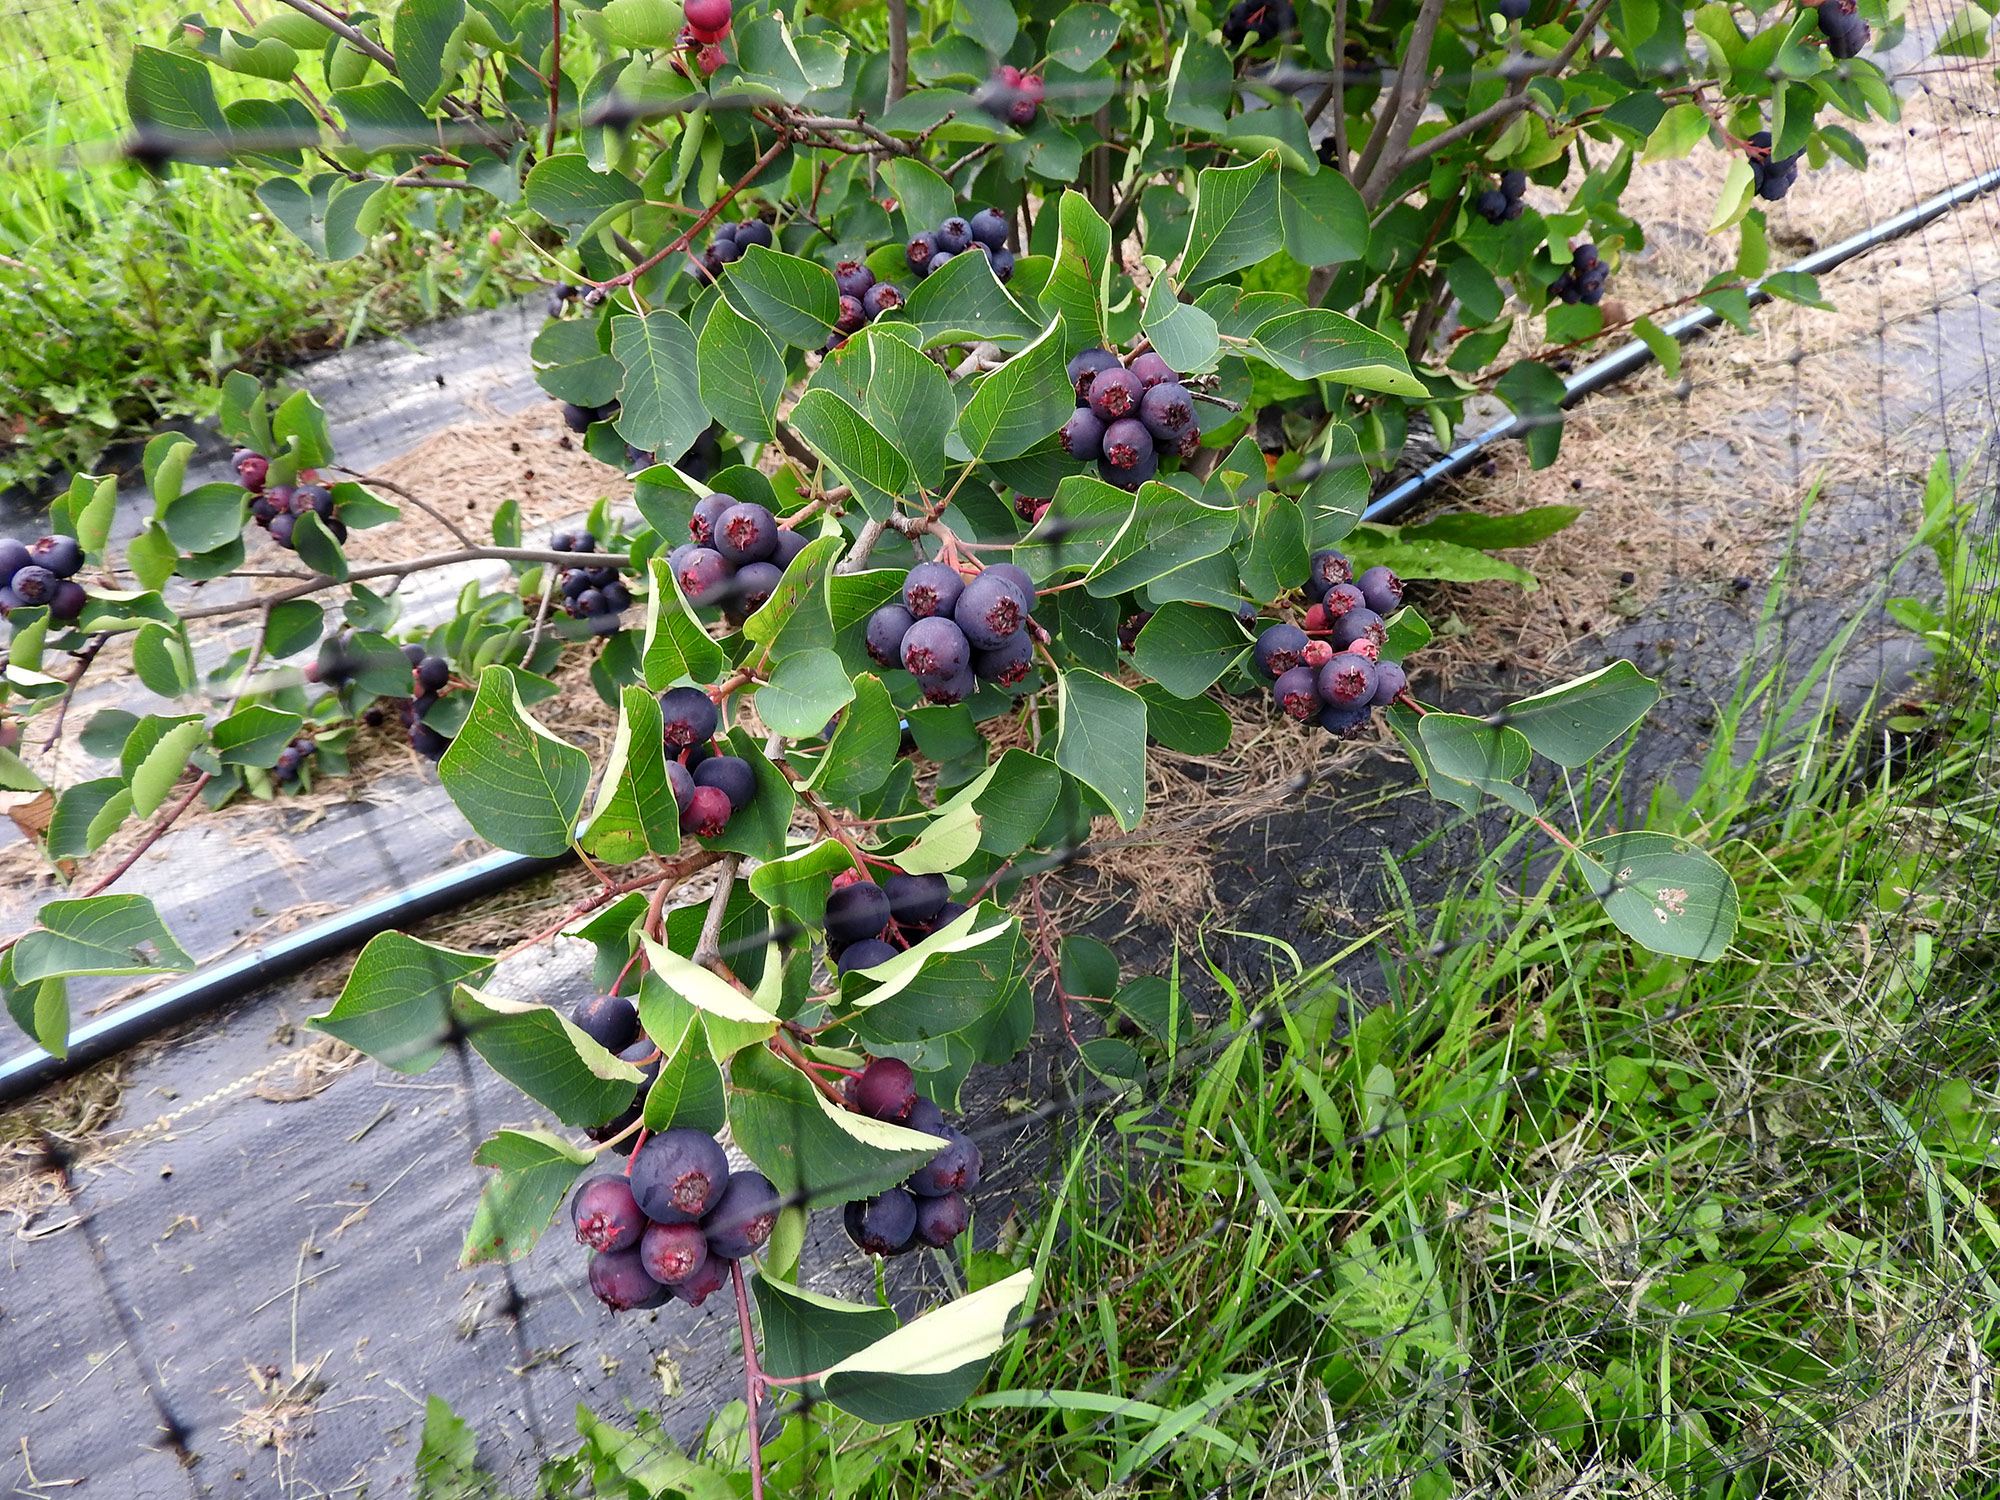 Juneberry bush